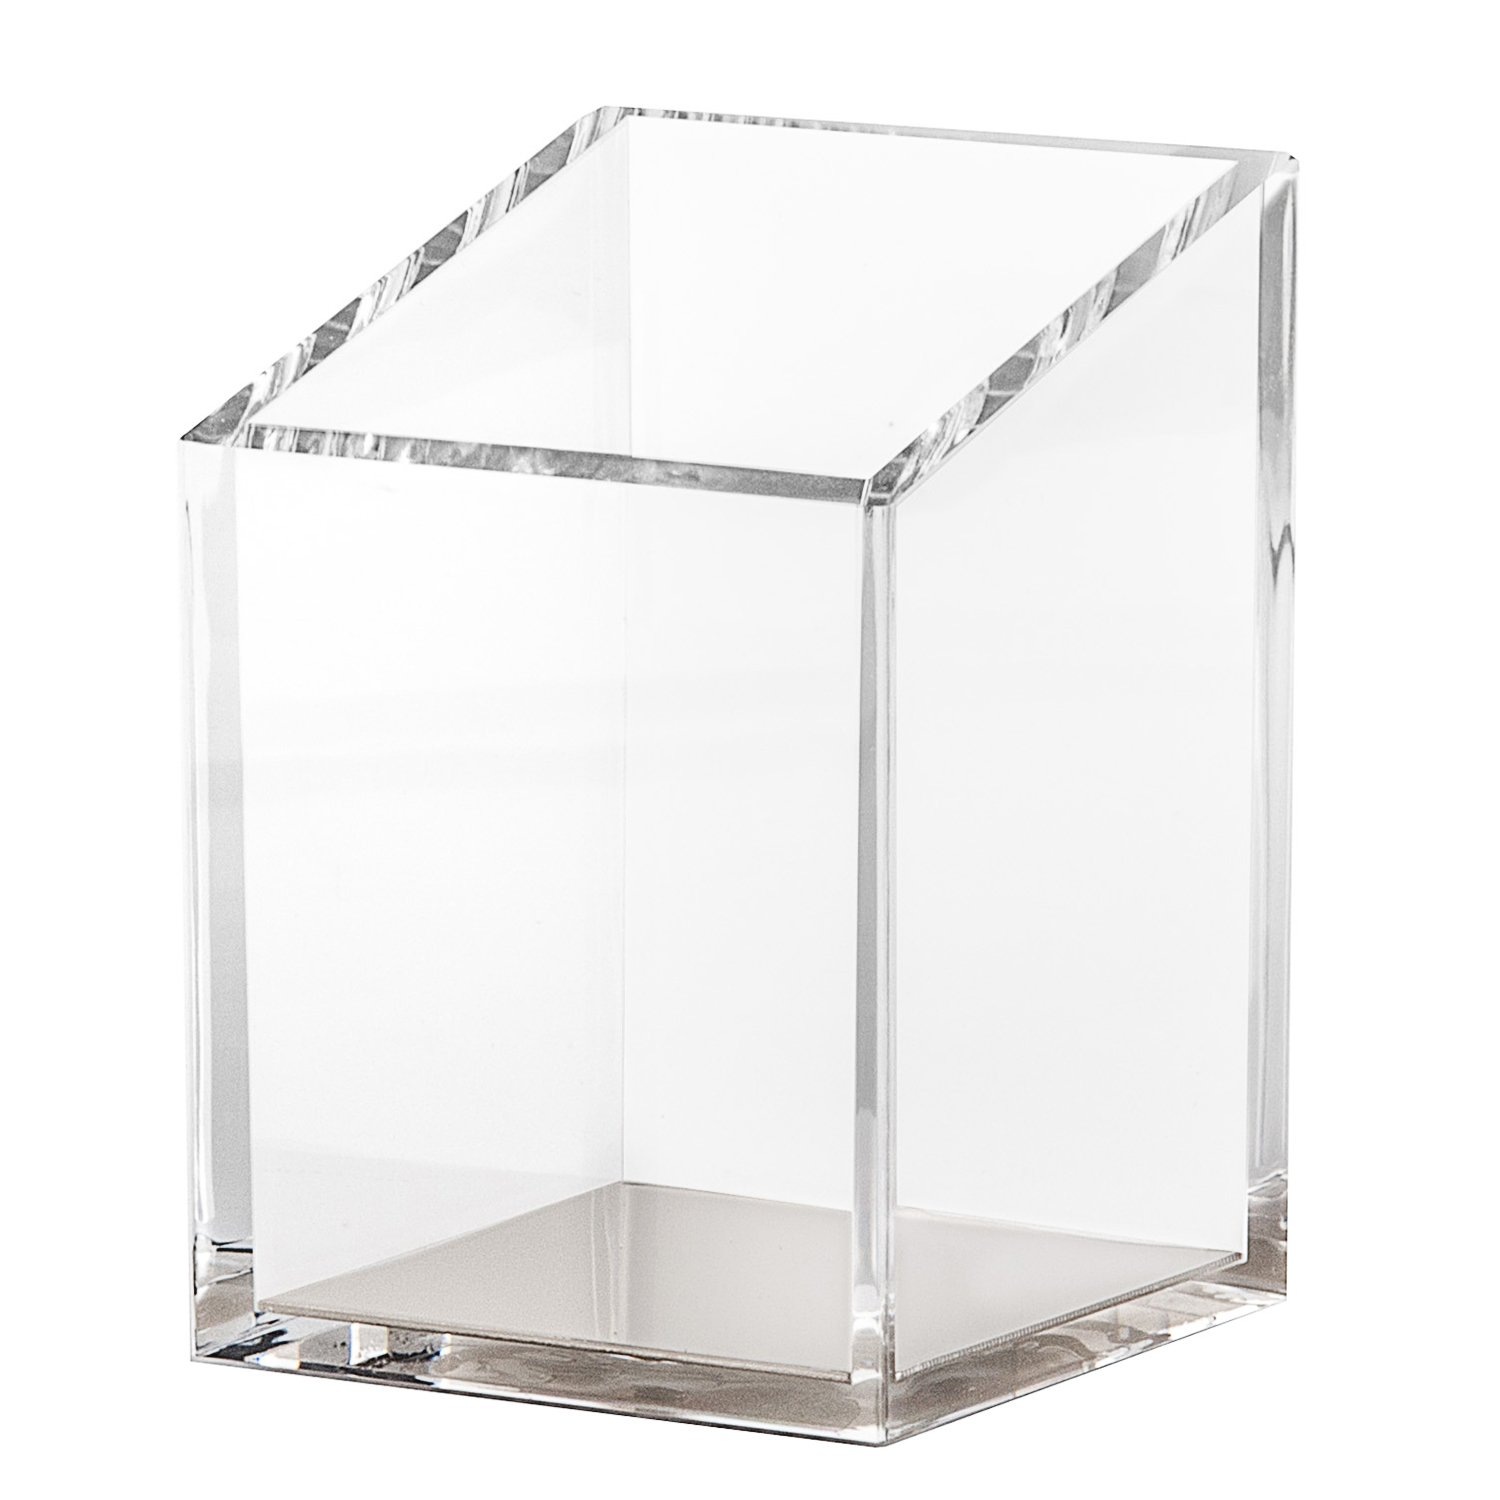 Acrylic & Silver Pencil and Pen Holder by OfficeGoods - A Classic Design to Brighten up Your Desk and Office